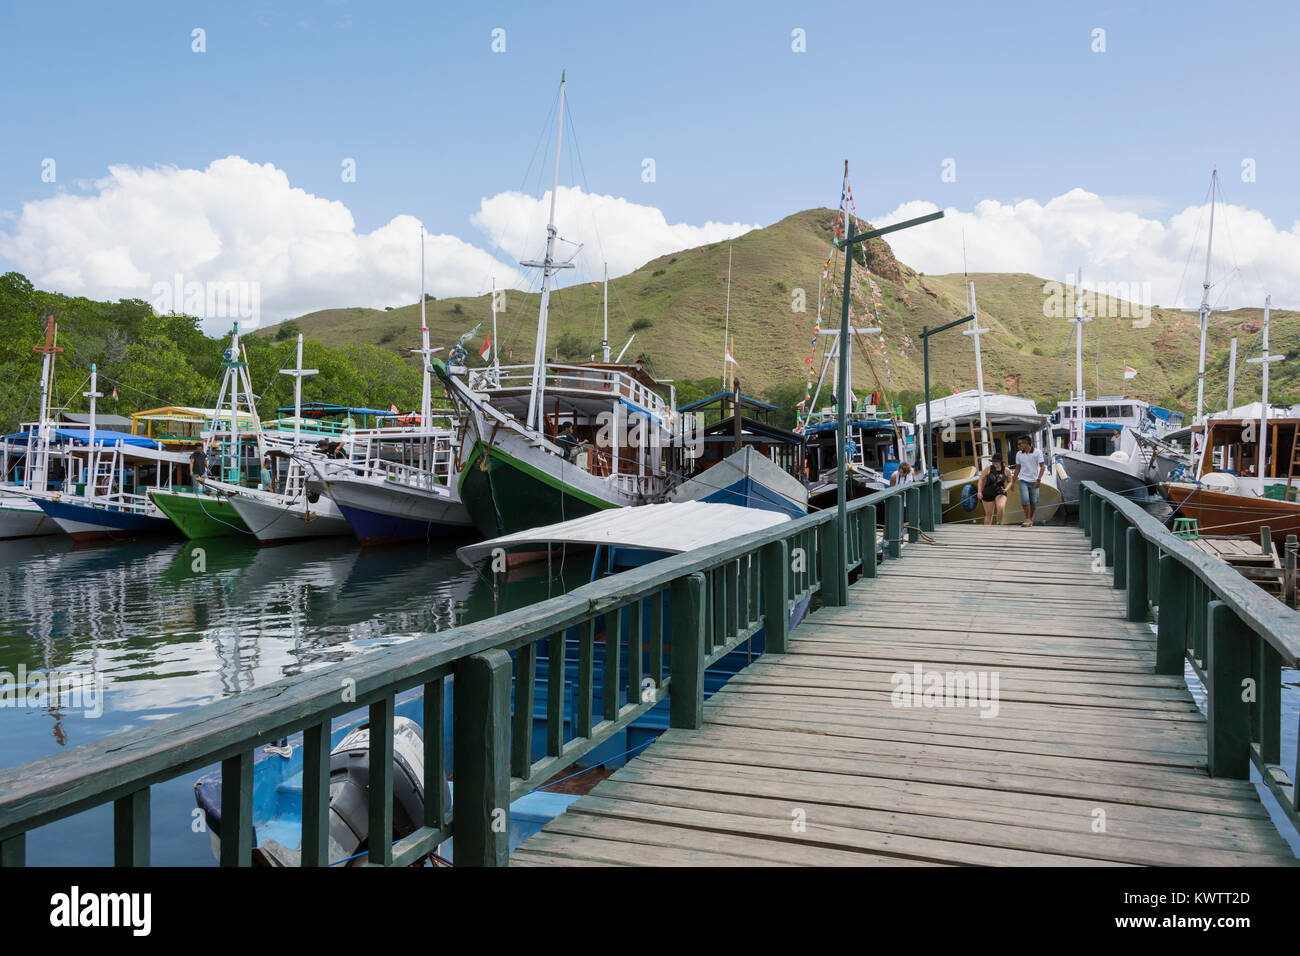 The dock at Rinca Island, one of 5 islands where the Komodo dragons reside, West Flores, Indonesia - Stock Image